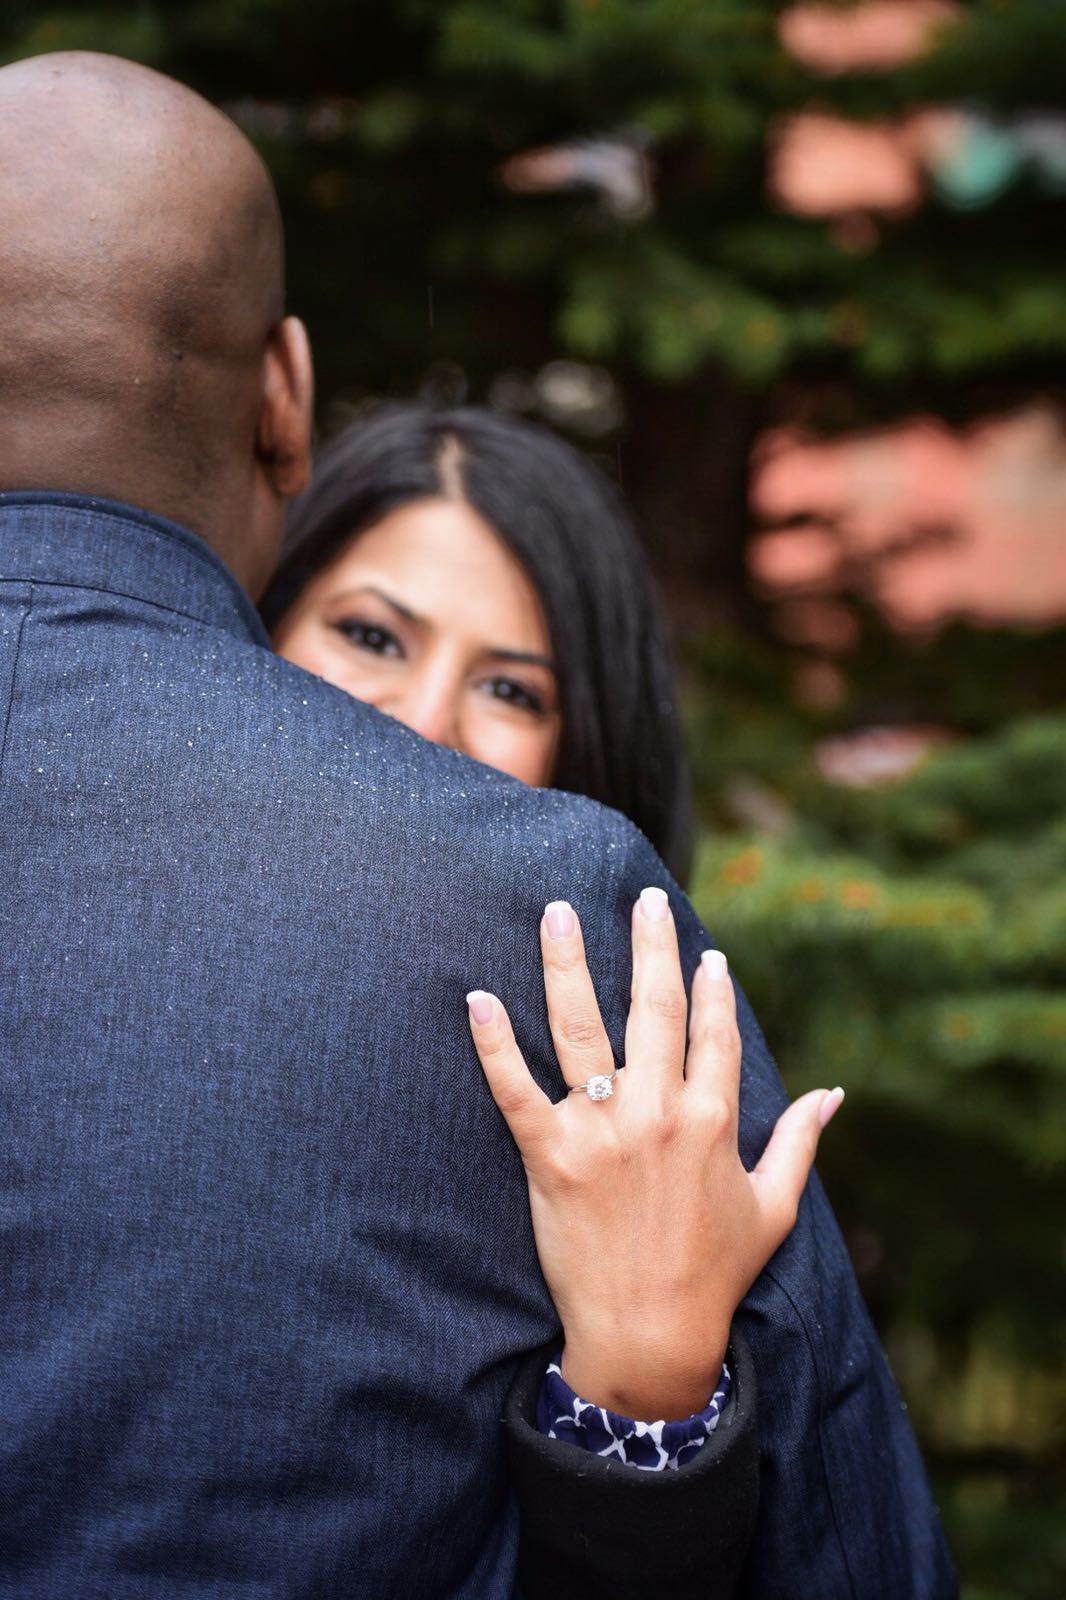 she-said-absolutely-proposals-and-romantic-events-calgary-yyc-planner-ideas-yes-engagement